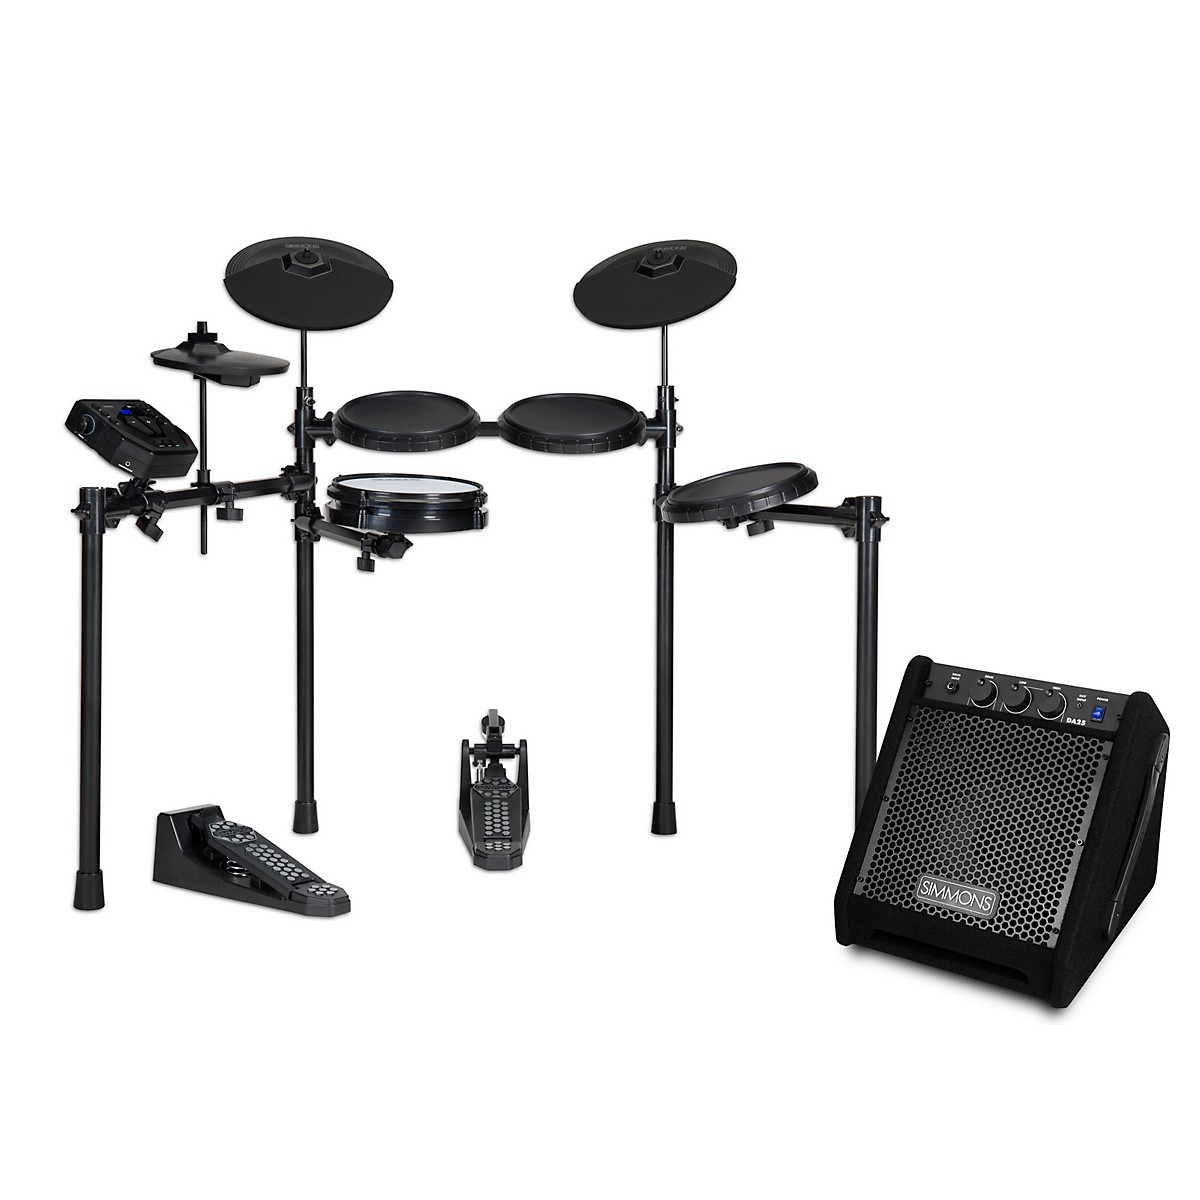 Simmons SD200 Electronic Drum Kit with DA25 Monitor